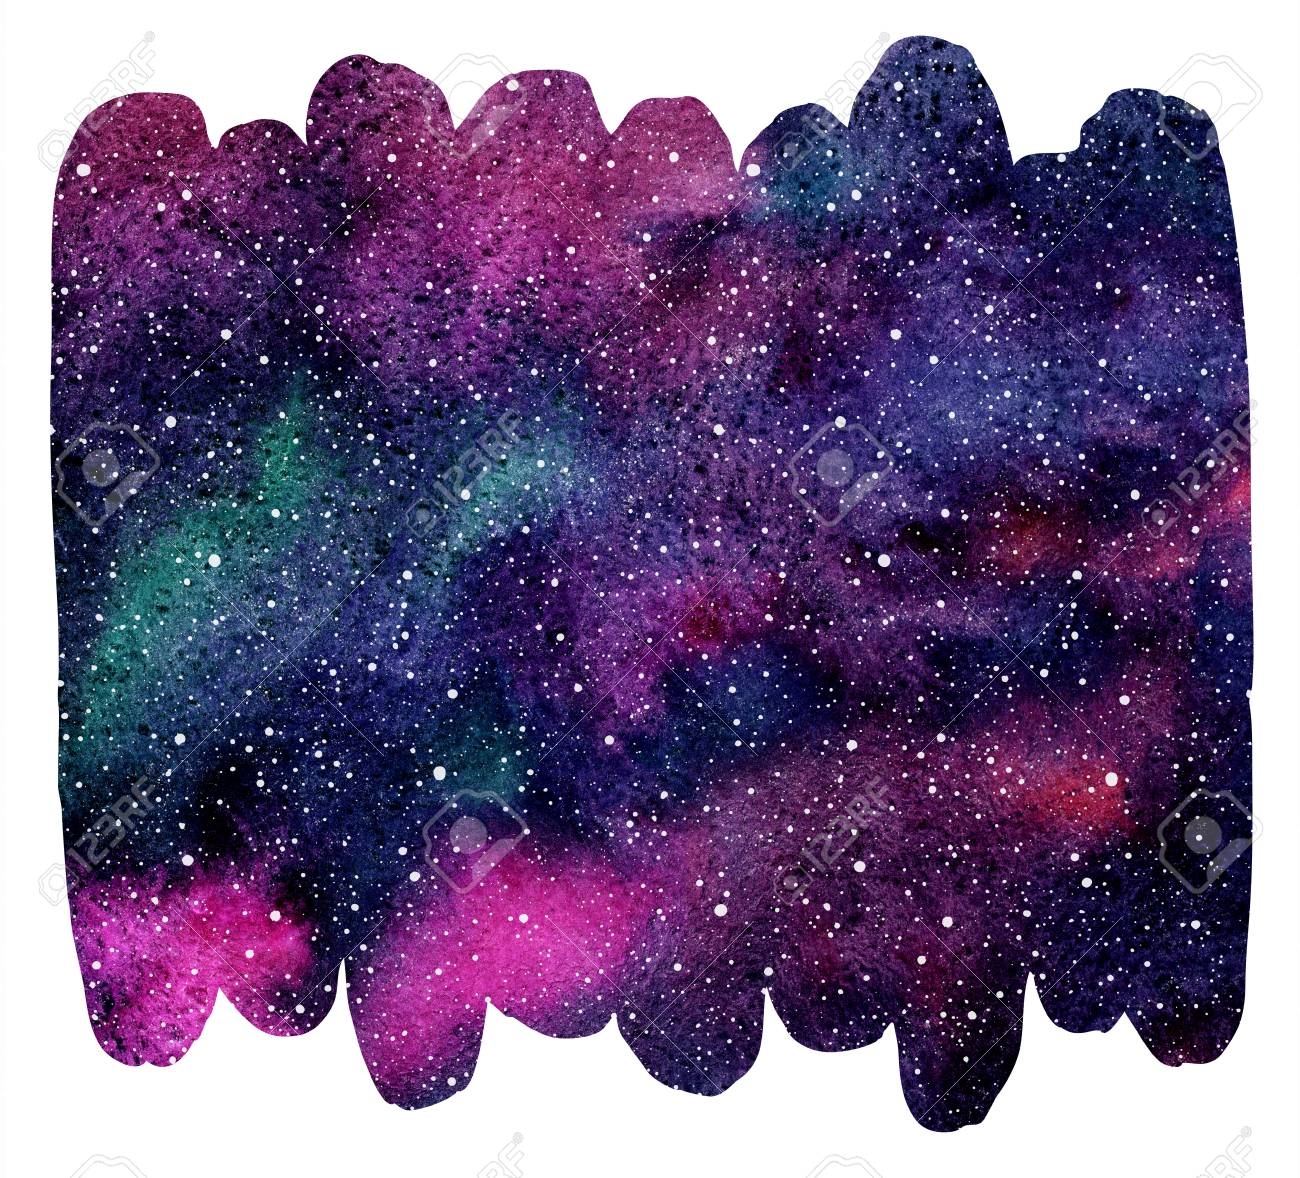 80755036-brush-drawn-shape-cosmic-background-galaxy-universe-or-night-sky-with-stars-and-colorful-watercolor-